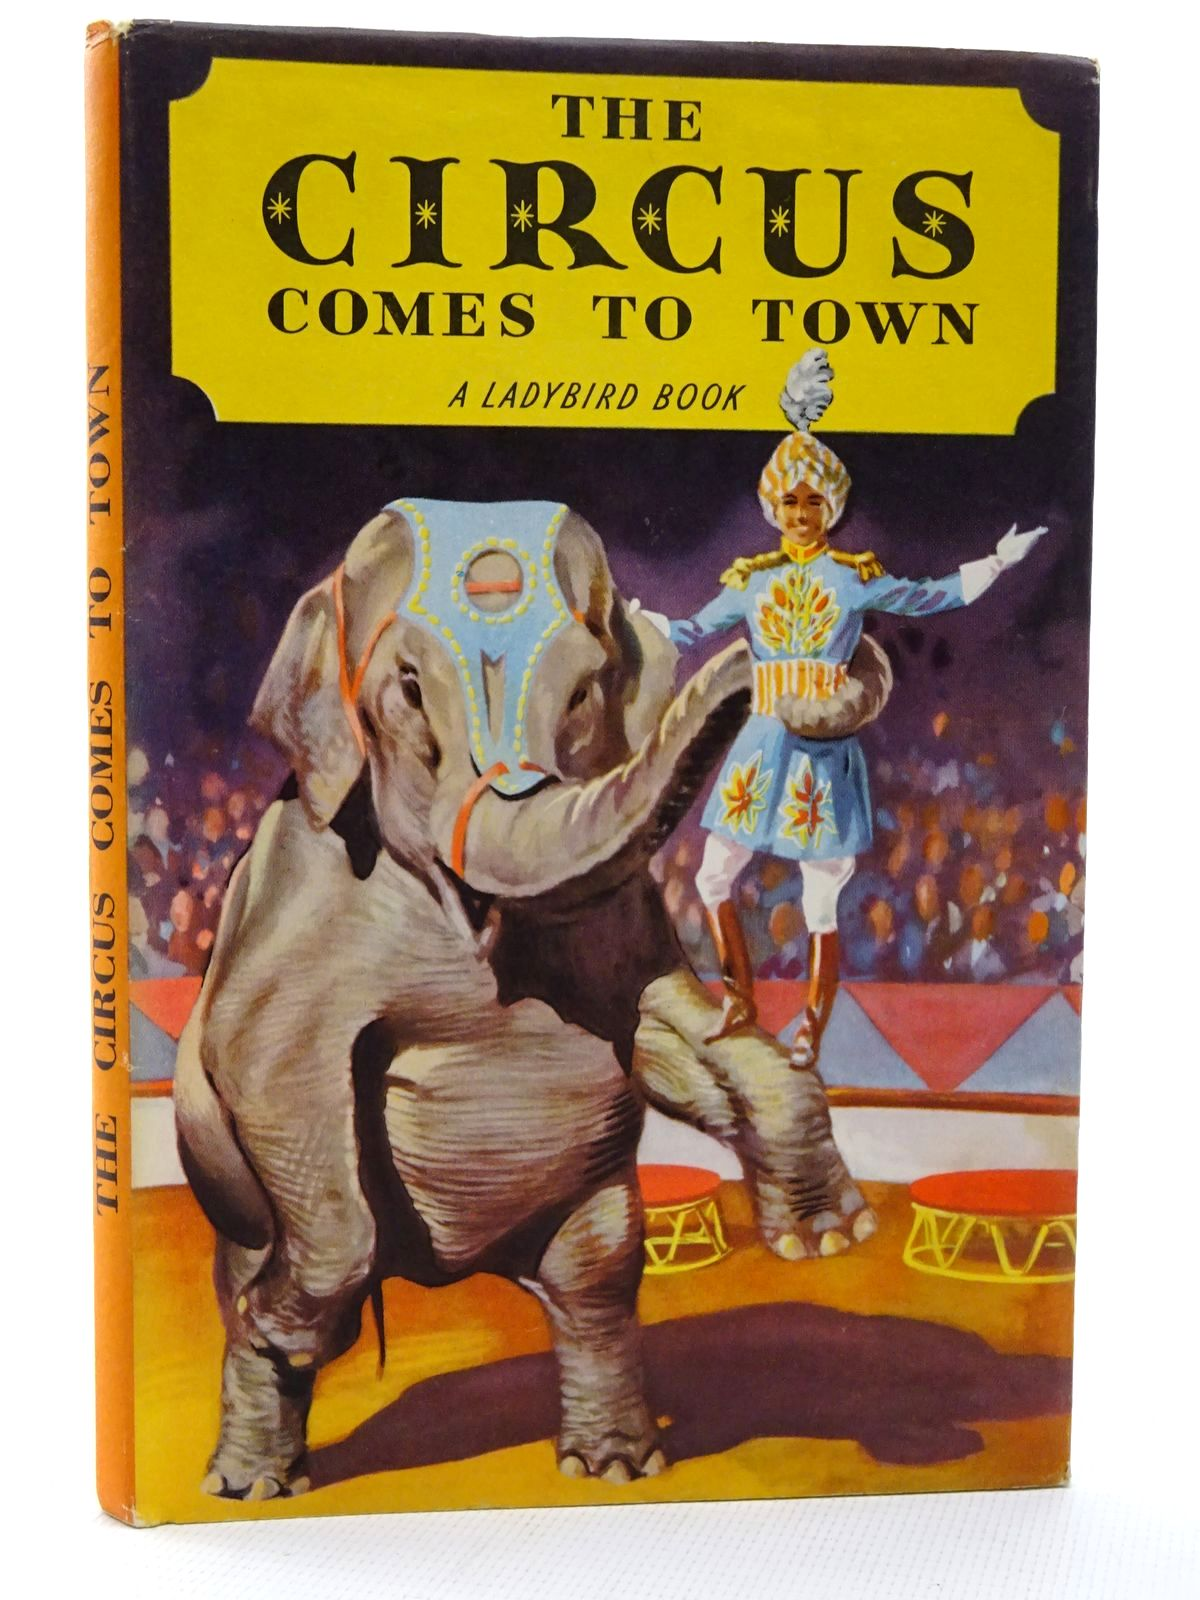 Photo of THE CIRCUS COMES TO TOWN written by Constanduros, Denis illustrated by Kenney, John published by Wills & Hepworth Ltd. (STOCK CODE: 2124231)  for sale by Stella & Rose's Books